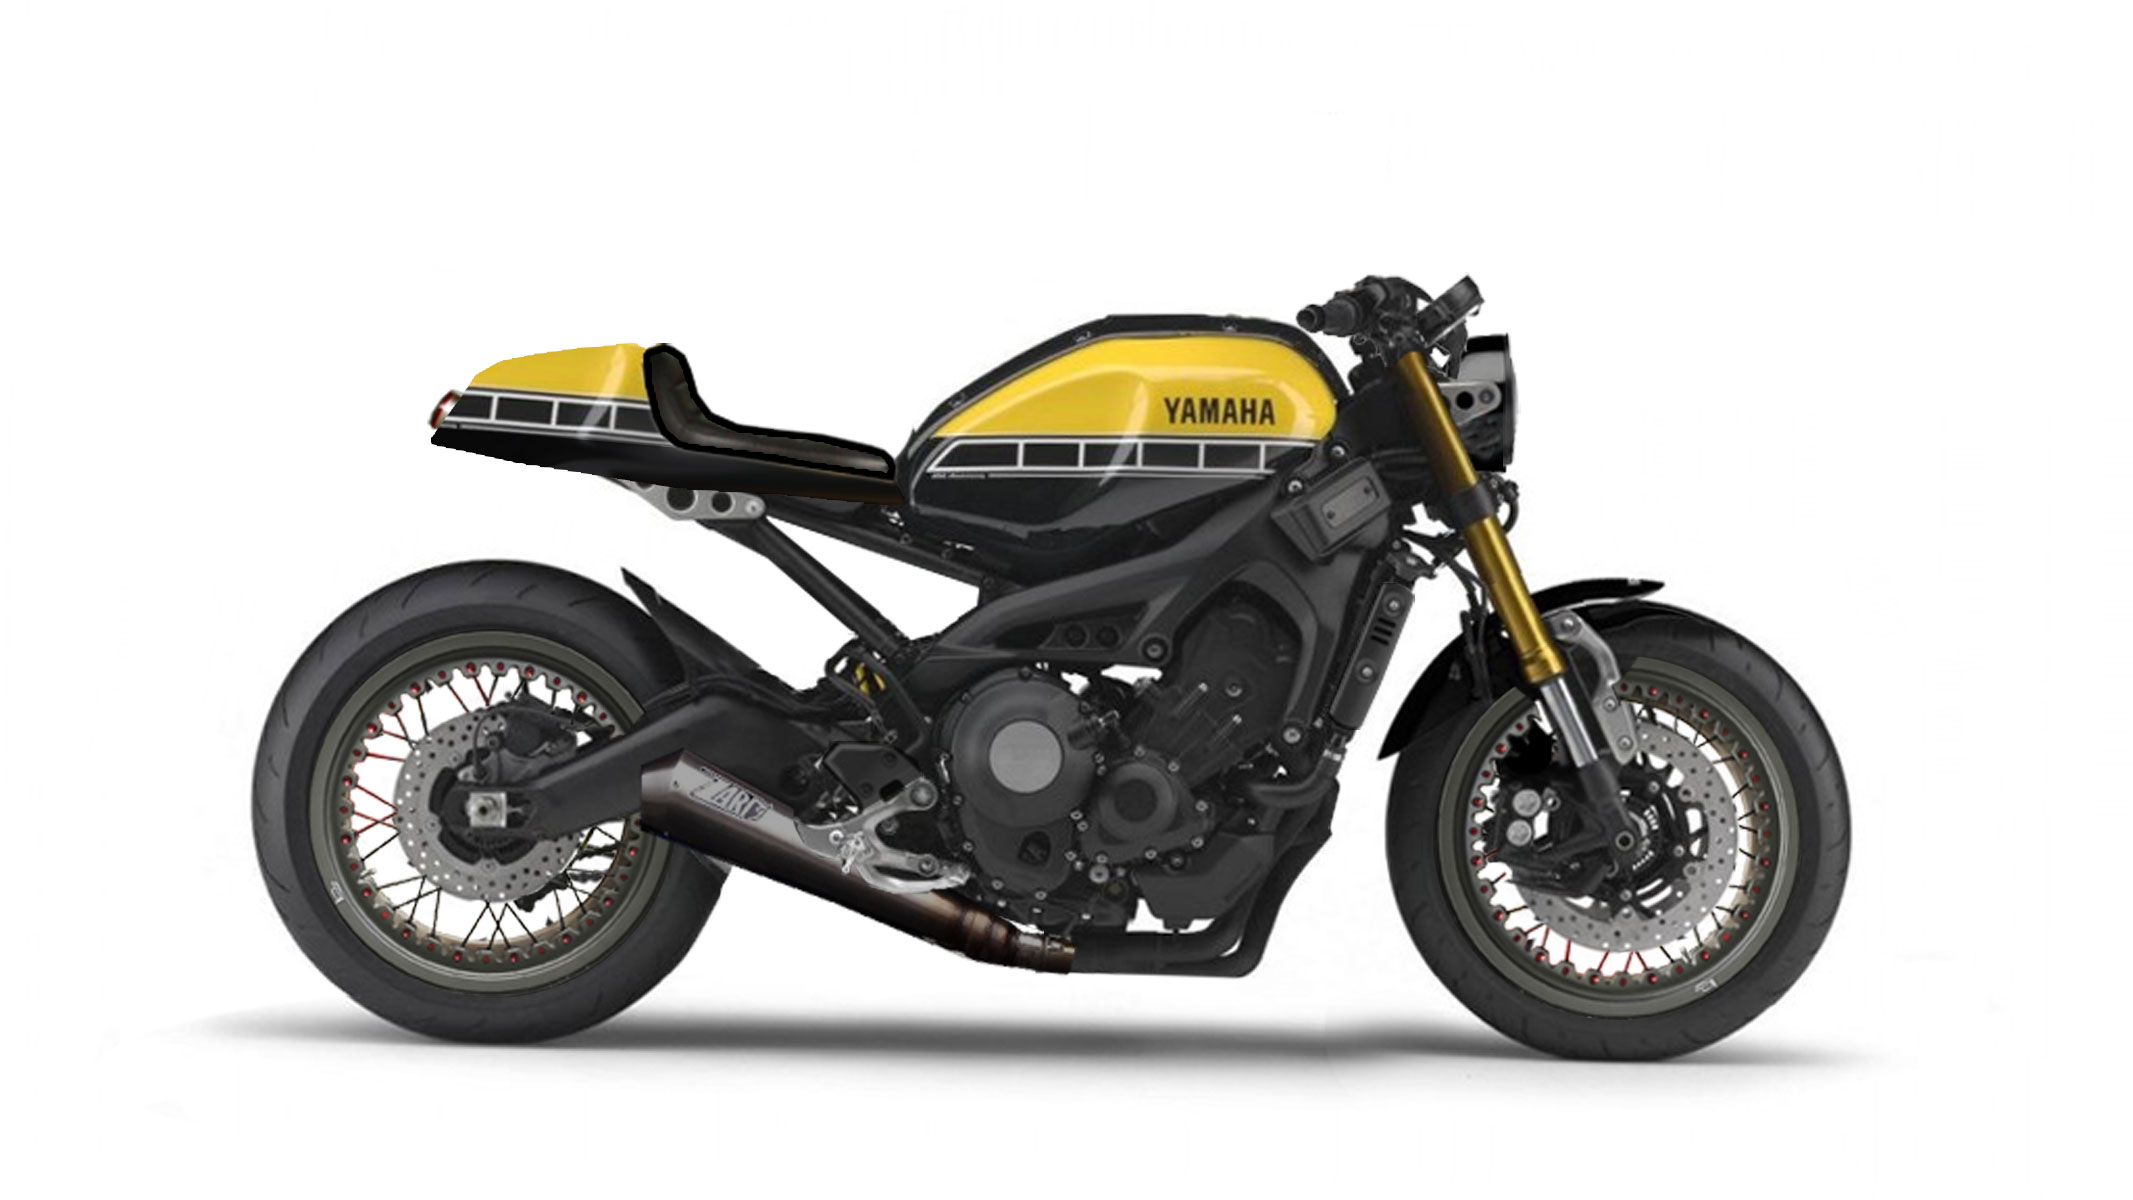 nice yardbuilt yamaha xsr 900 abs cafe racer project